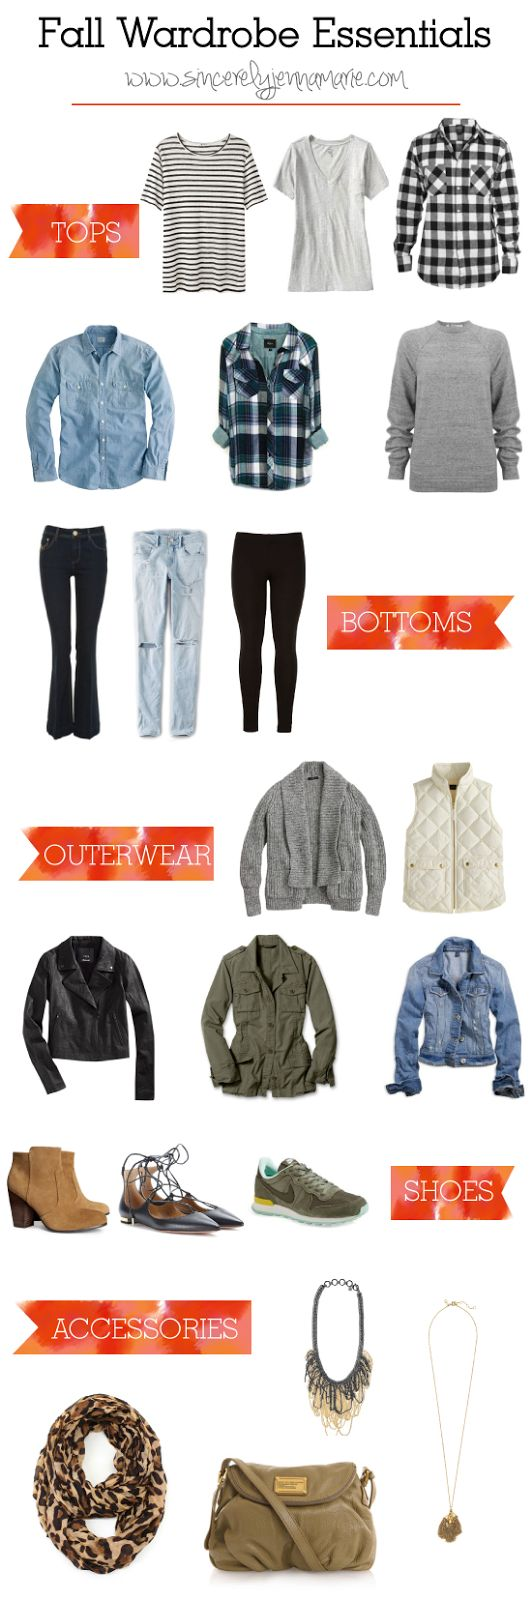 Fall Wardrobe Essentials- perfect for building an Autumn capsule wardrobe, layering, or using as a fall shopping checklist!